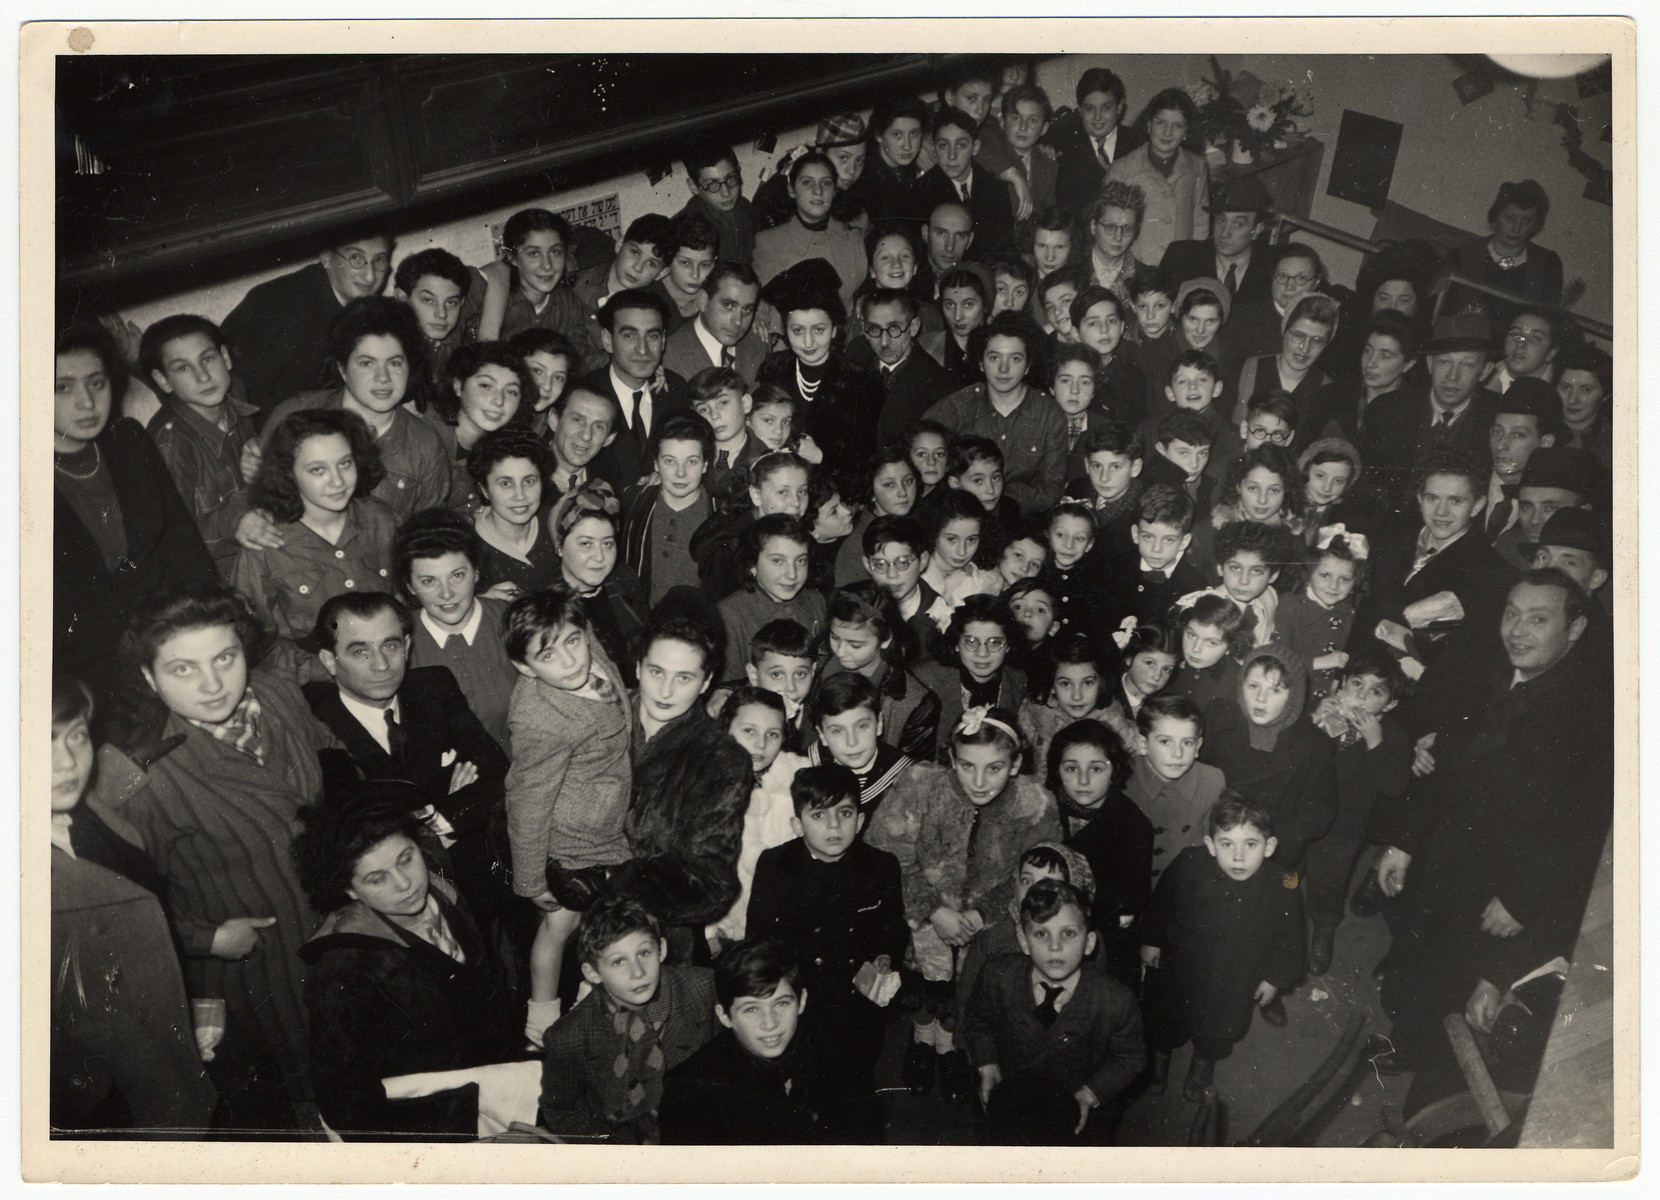 Belgian Jews gather for a holiday celebration after liberation.  Among those pictured Moshe Werber being held in the arms of Mrs. Flam.  His mother, Shifra Werber, is diagonally behind him; next to her is the Hebrew teacher Faivel Blank, Abush Werber, Fela Perelman and Israel Tabakman.  Lola Pomerantz is at the back, left.Jacques Silberman is pictured to their left.